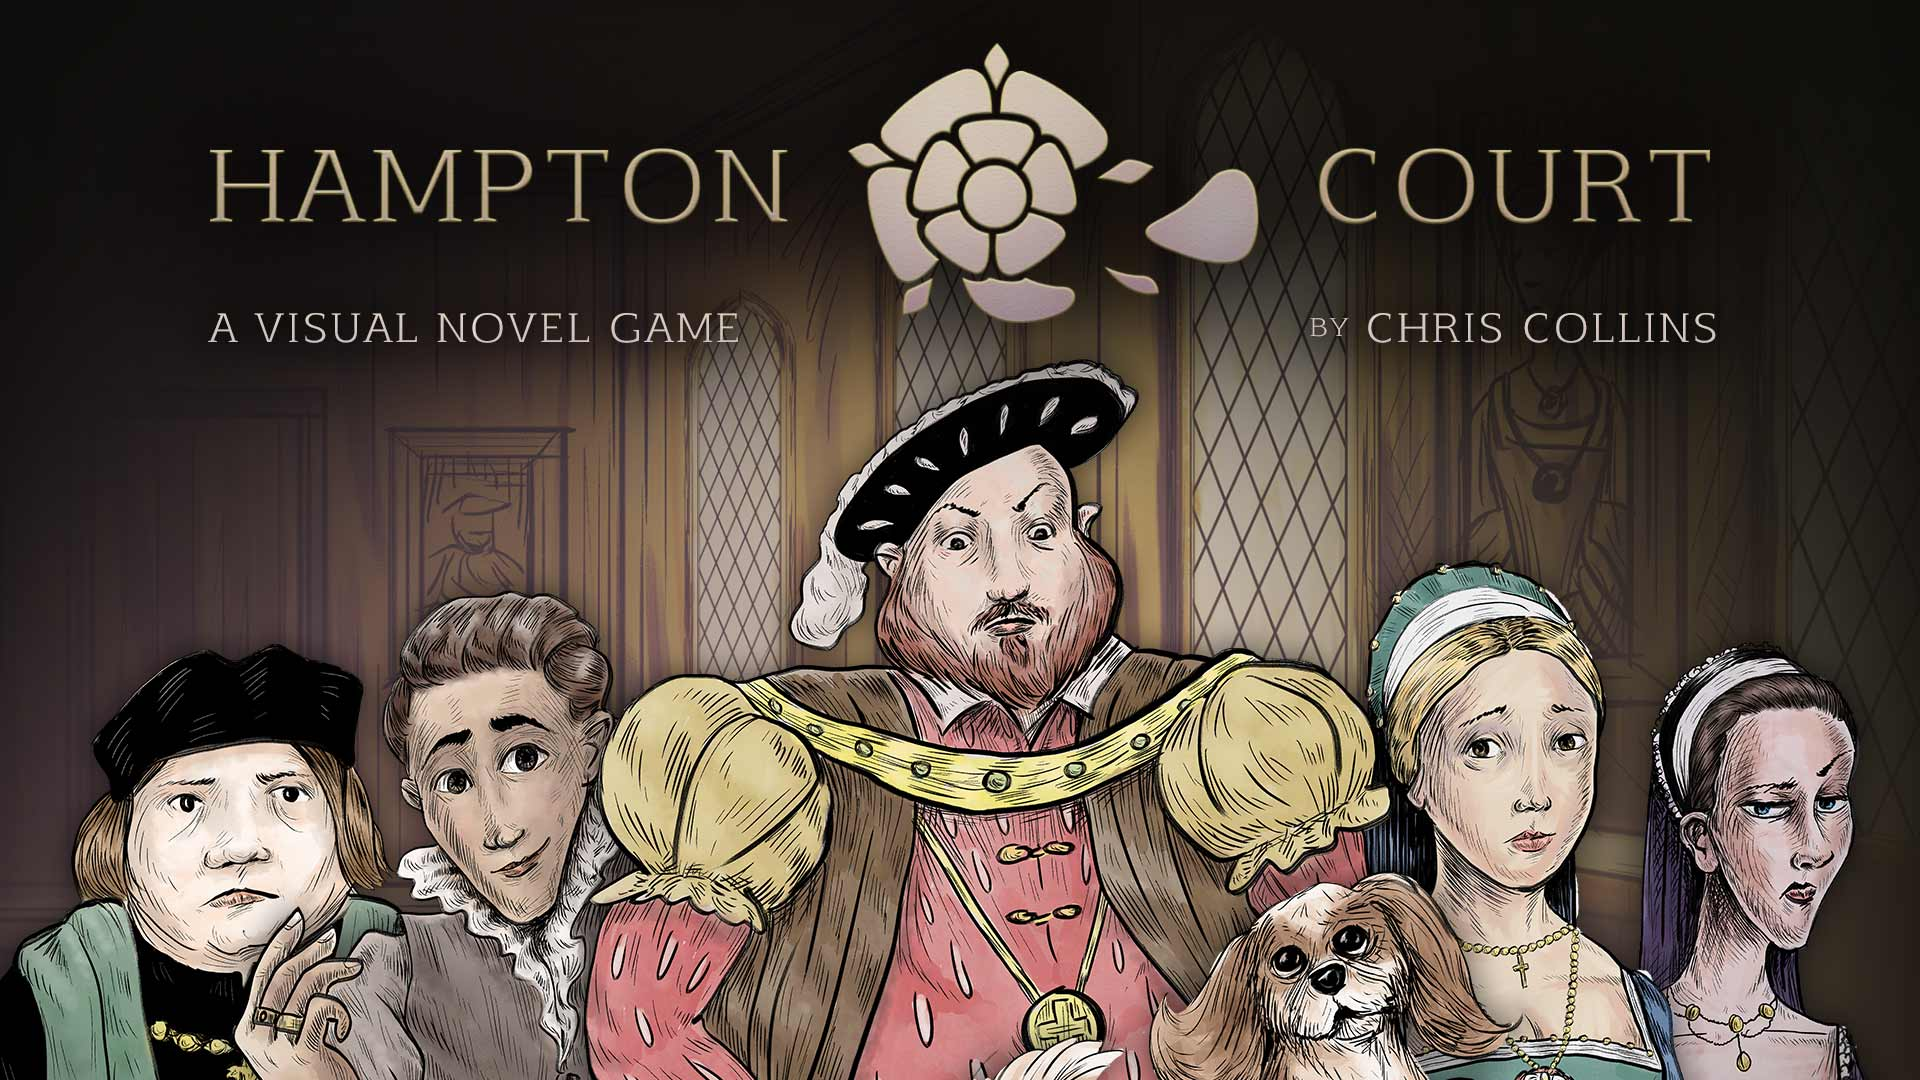 Hampton Court is free over at Itch.io for a limited time